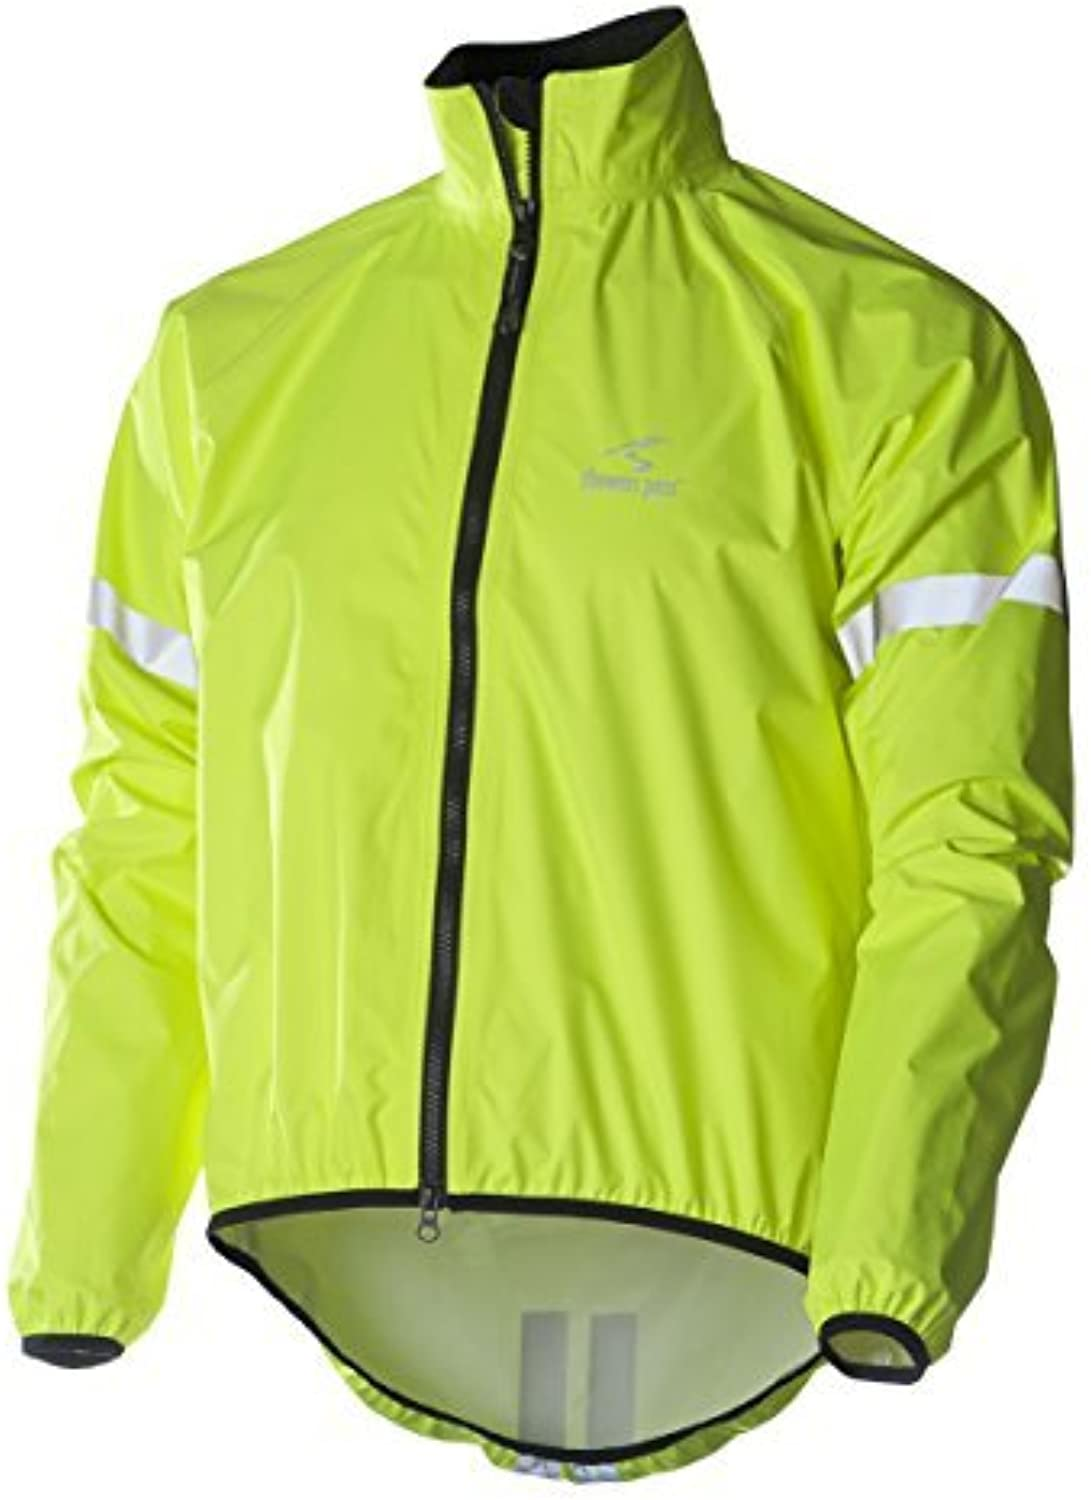 Showers Pass Men's Storm Jacket, Neon Yellow, X-Small by Showers Pass